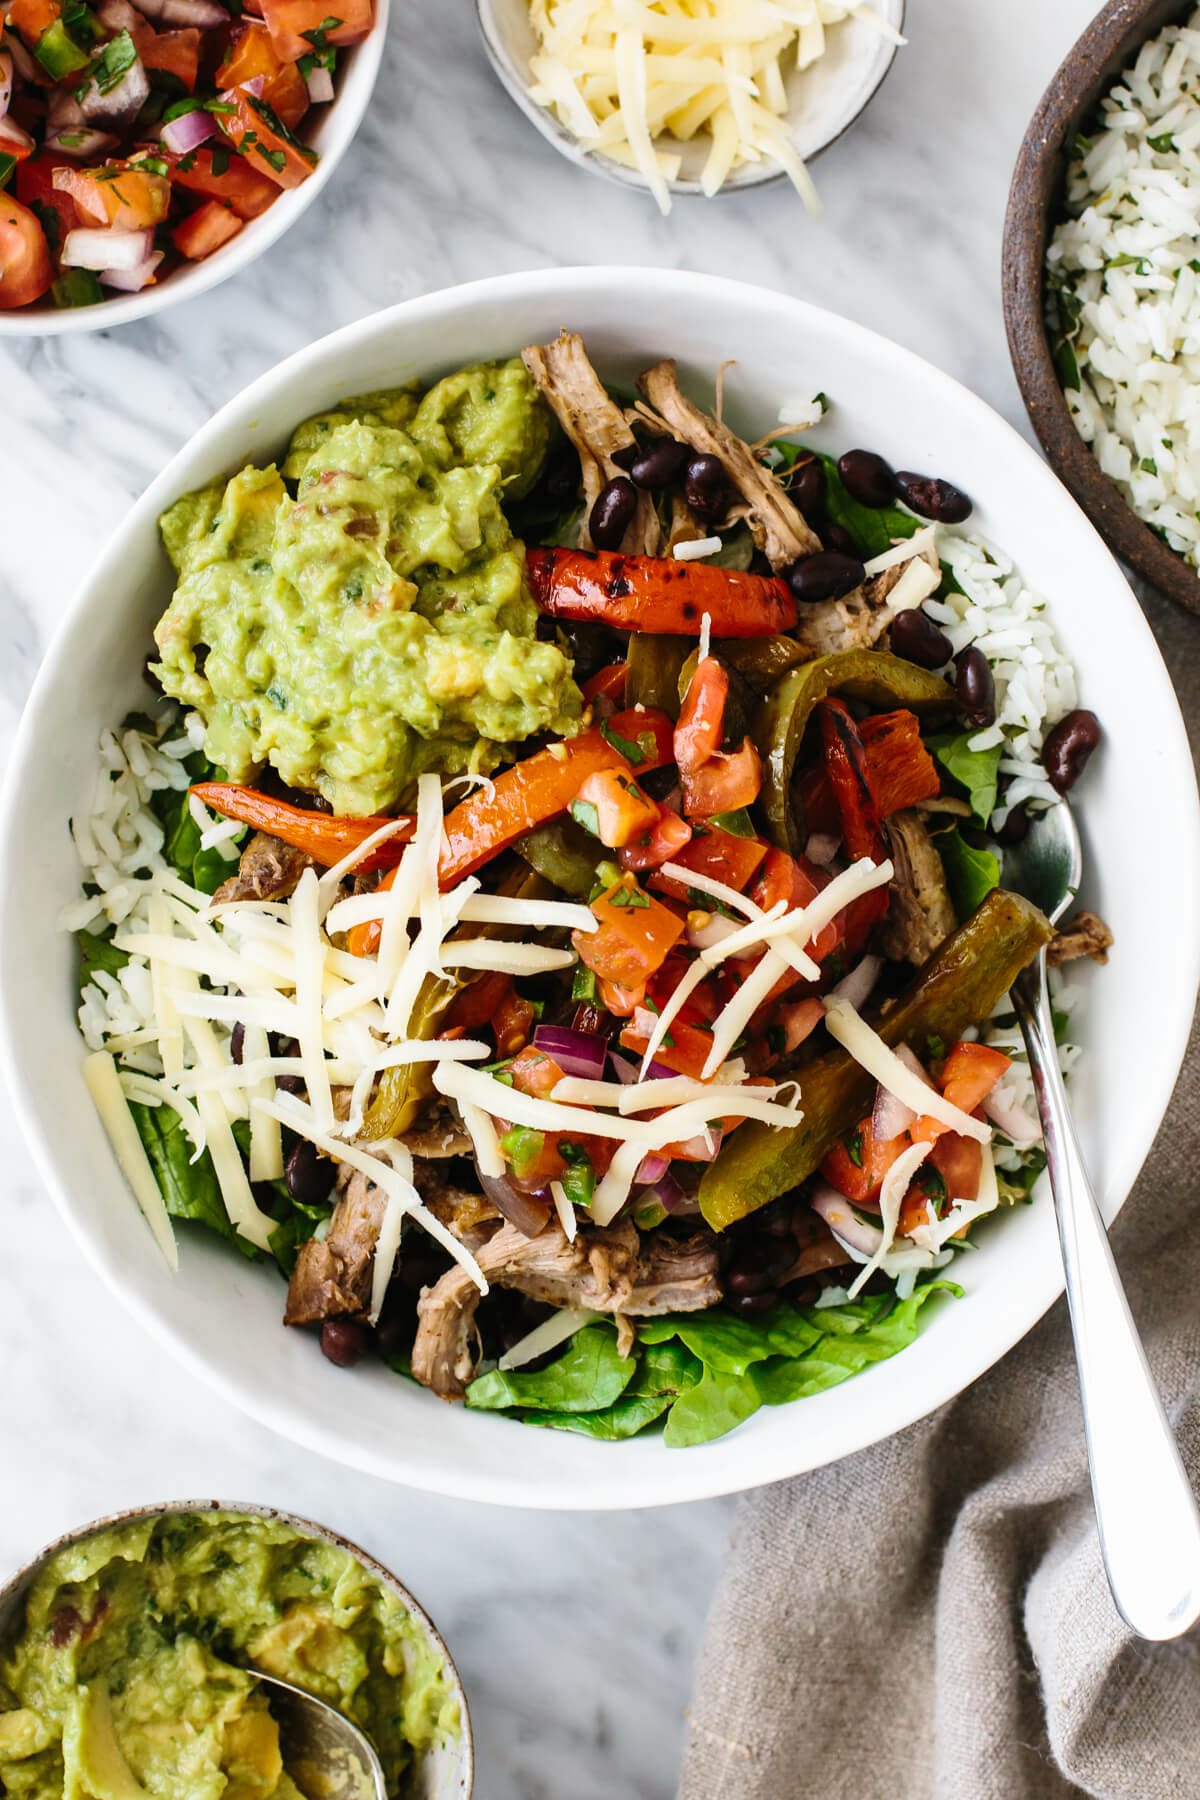 A carnitas burrito bowl, in a white bowl, surrounded by ingredients.